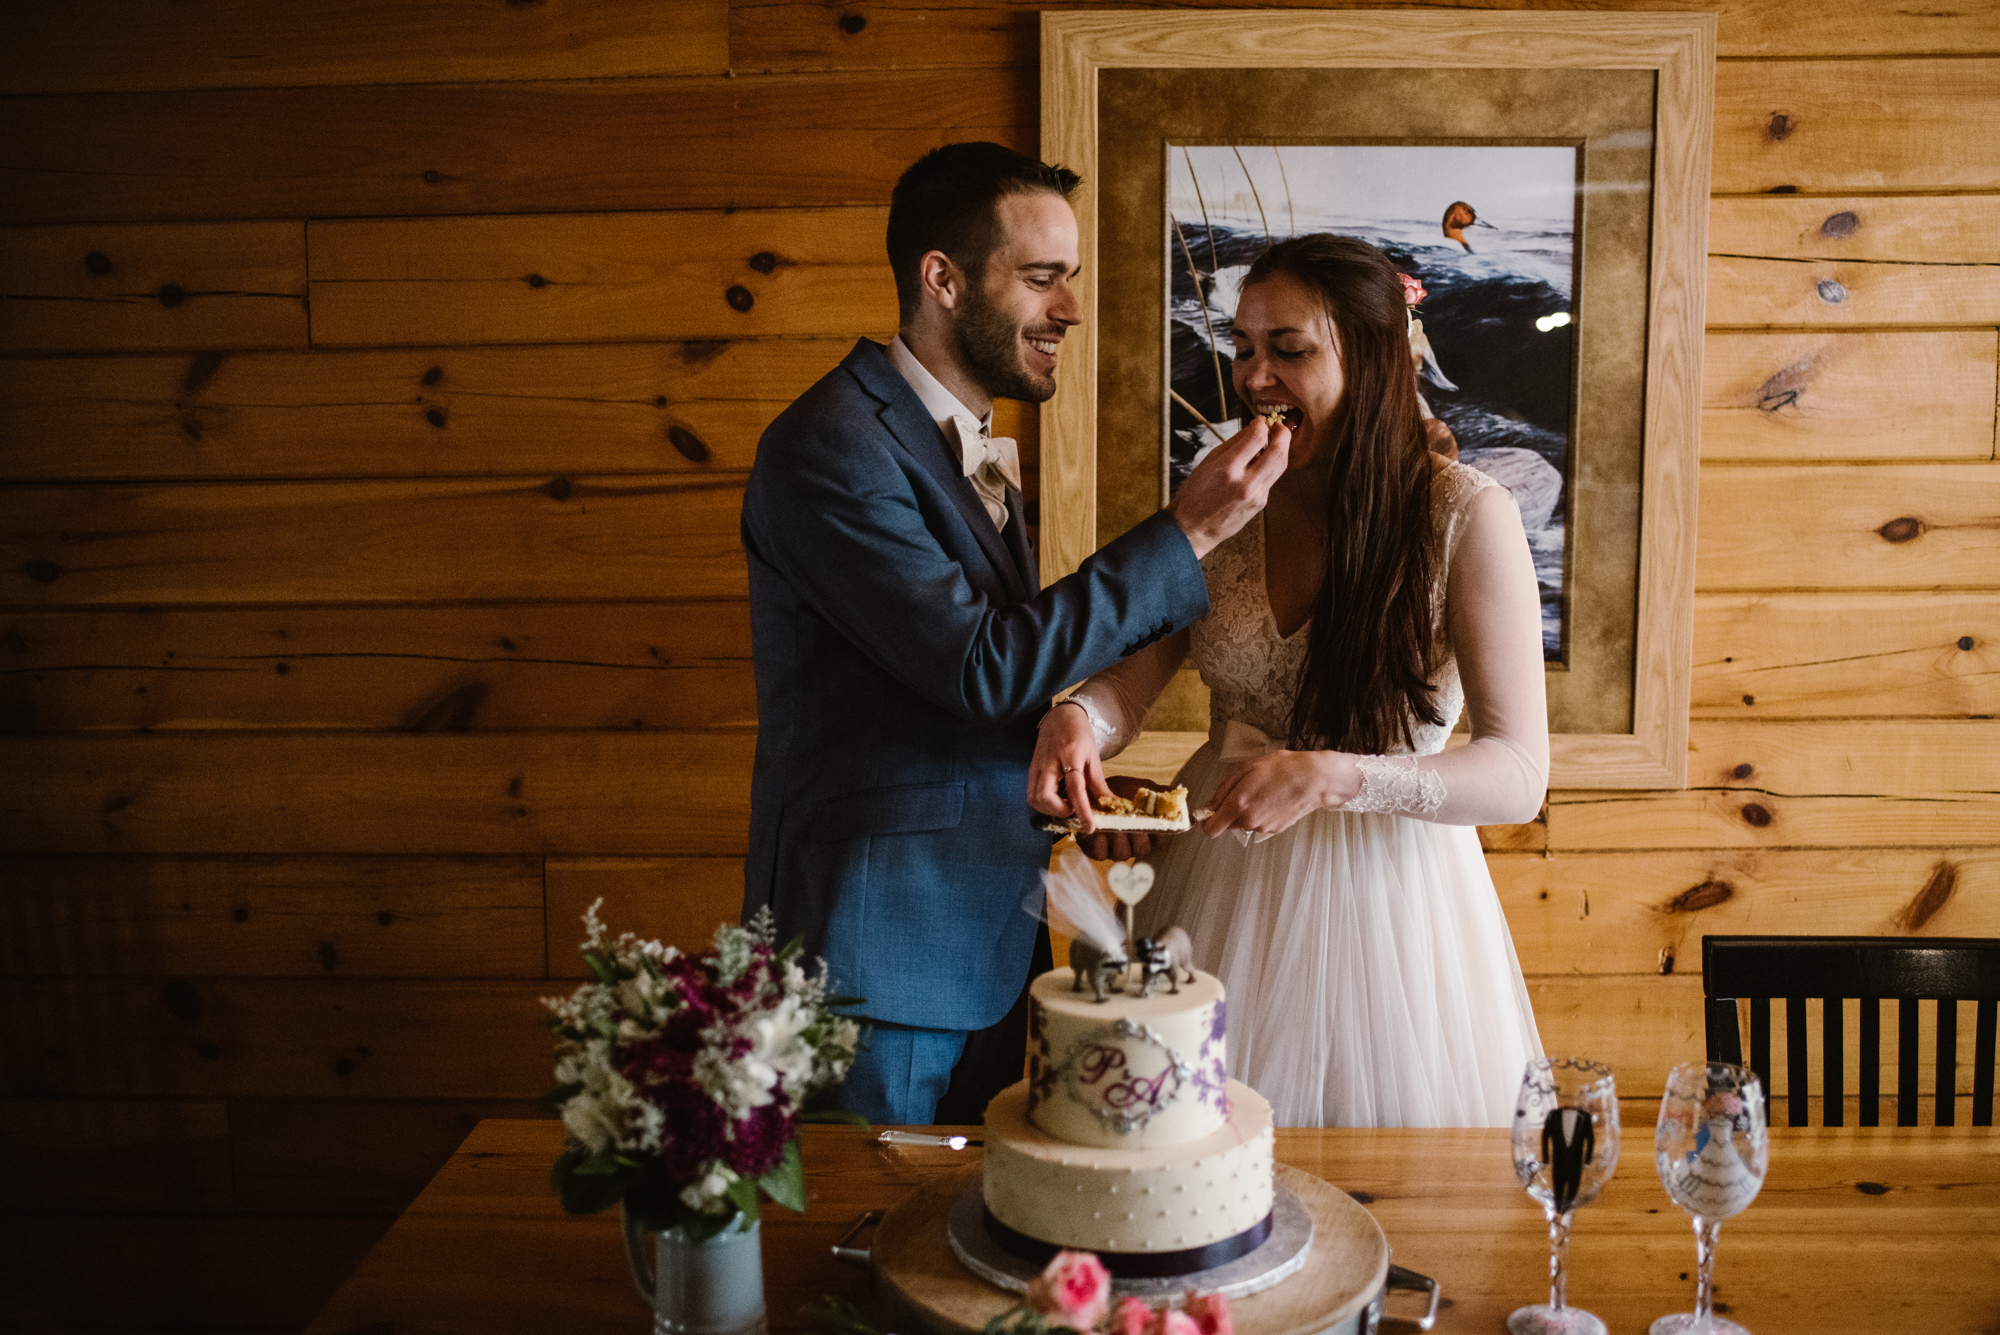 Paula and Andrew - Small Adventurous Wedding in Shenandoah National Park - Blue Ridge Mountain Wedding - White Sails Creative - Mountain Elopement_58.jpg